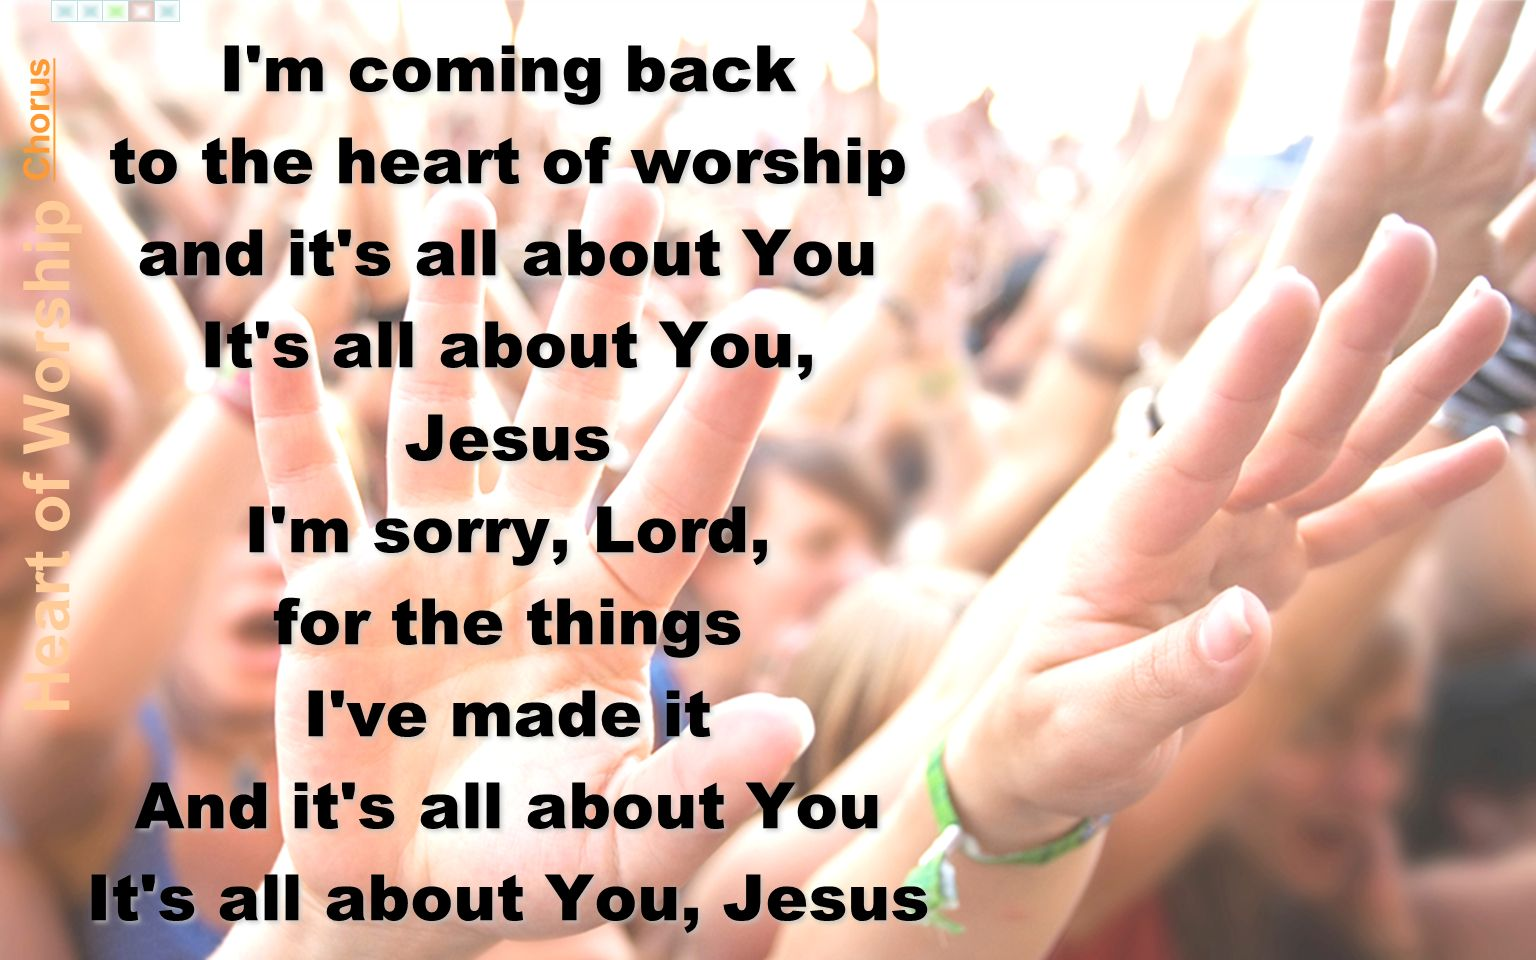 I m coming back to the heart of worship and it s all about You